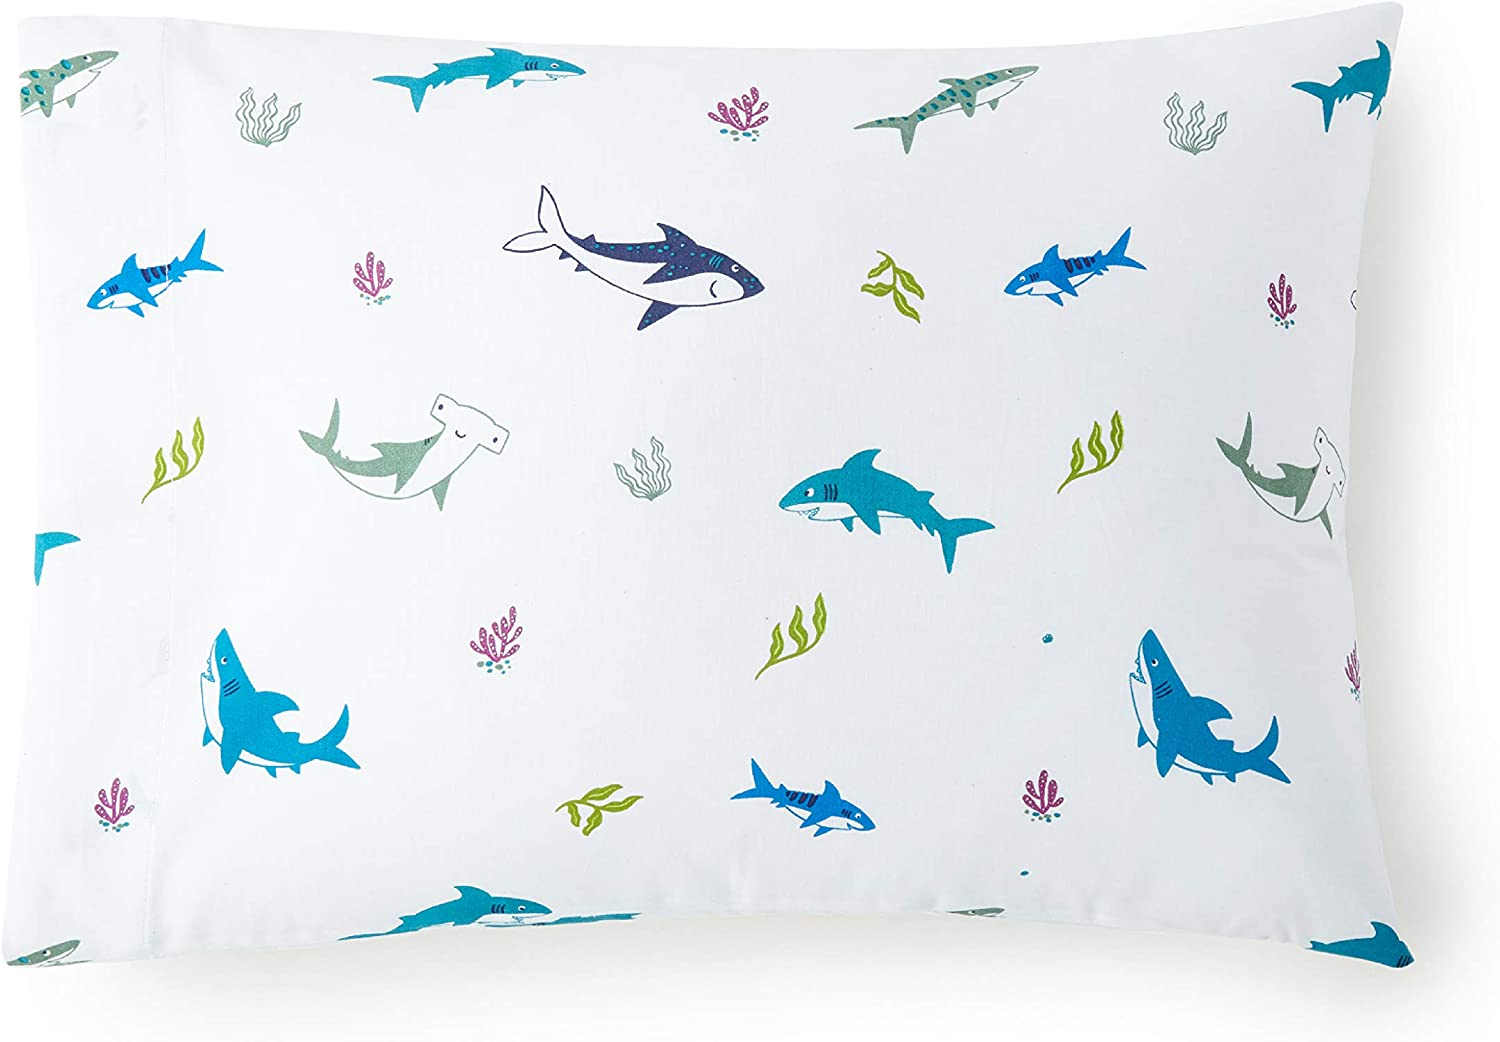 Wildkin 100% Cotton Hypoallergenic Toddler Pillow Case for Boys and Girls, Measures 19 x 13.5 Inches, Fits a Standard Toddler Pillow, Certified Oeko-TEX Standard 100, Olive Kids (Shark Attack)